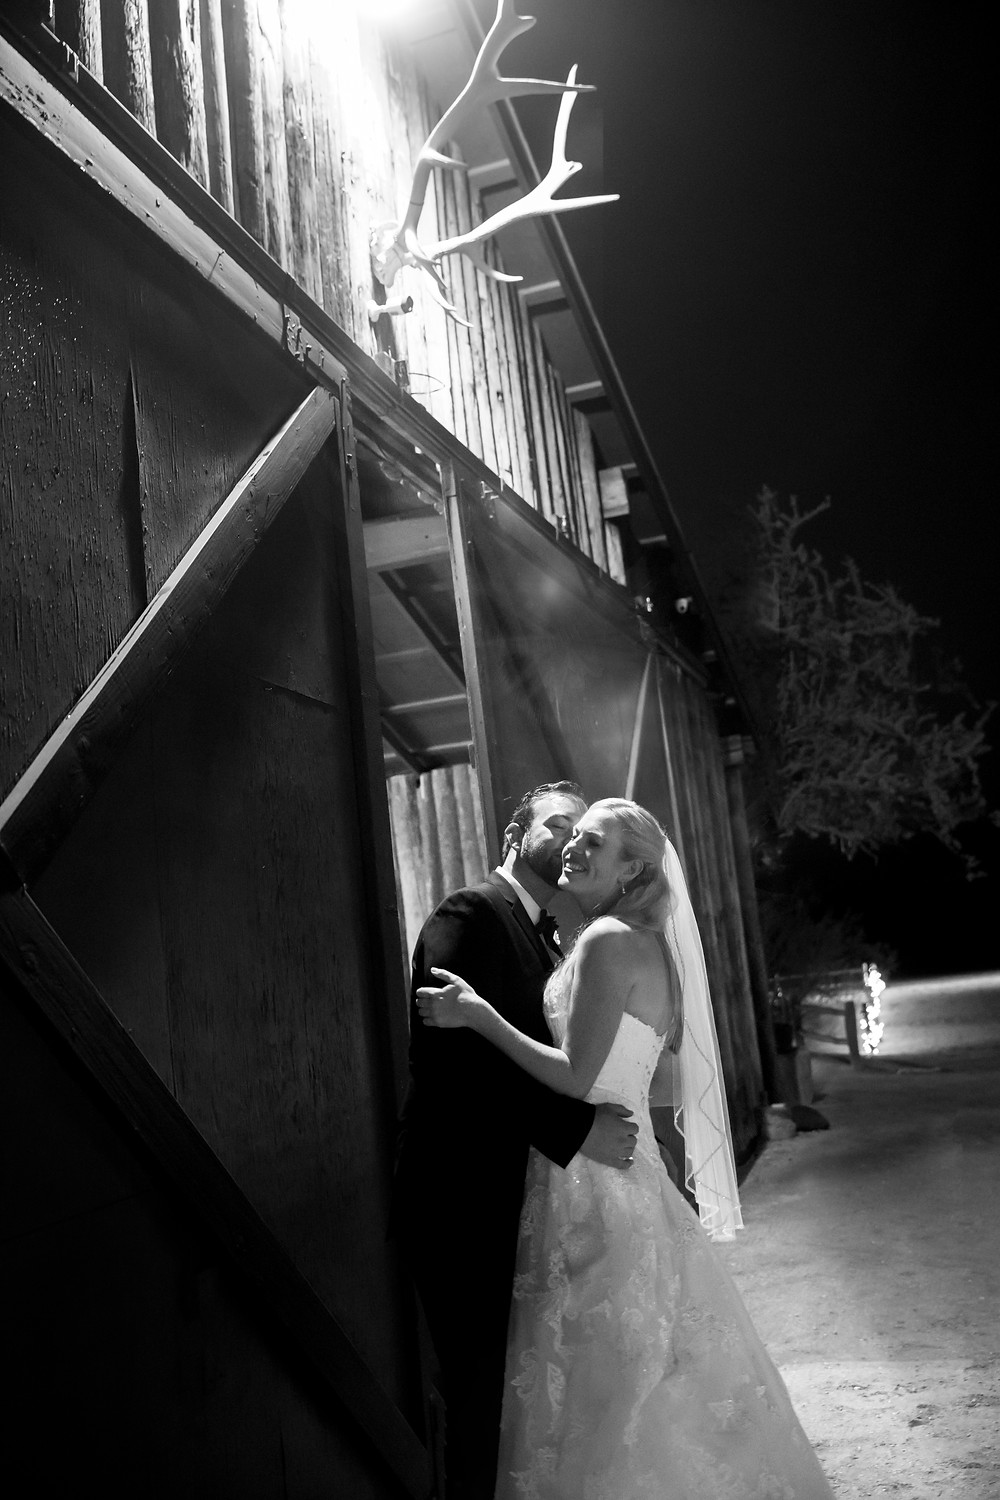 a newly wed couple kisses under a spotlight on their wedding day